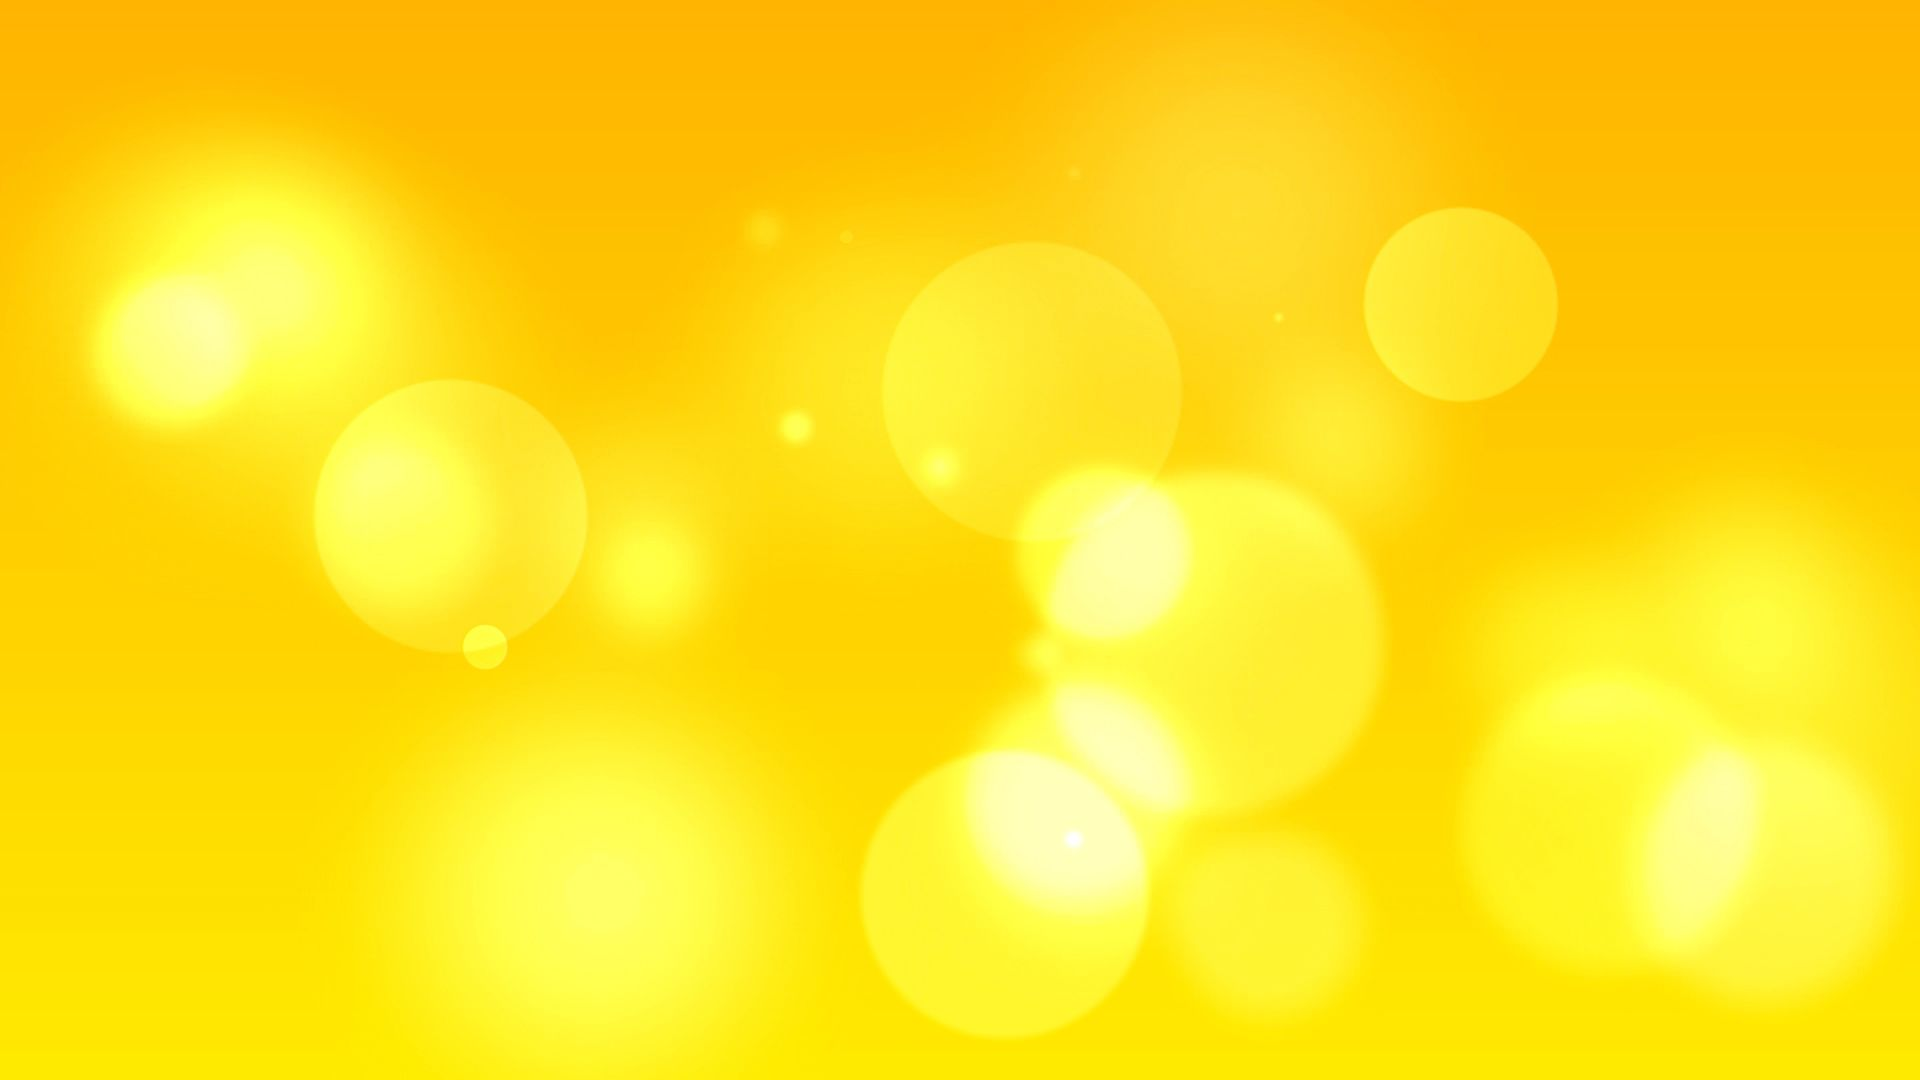 Yellow Abstract Hd Wallpapers Yellow Abstract High Quality